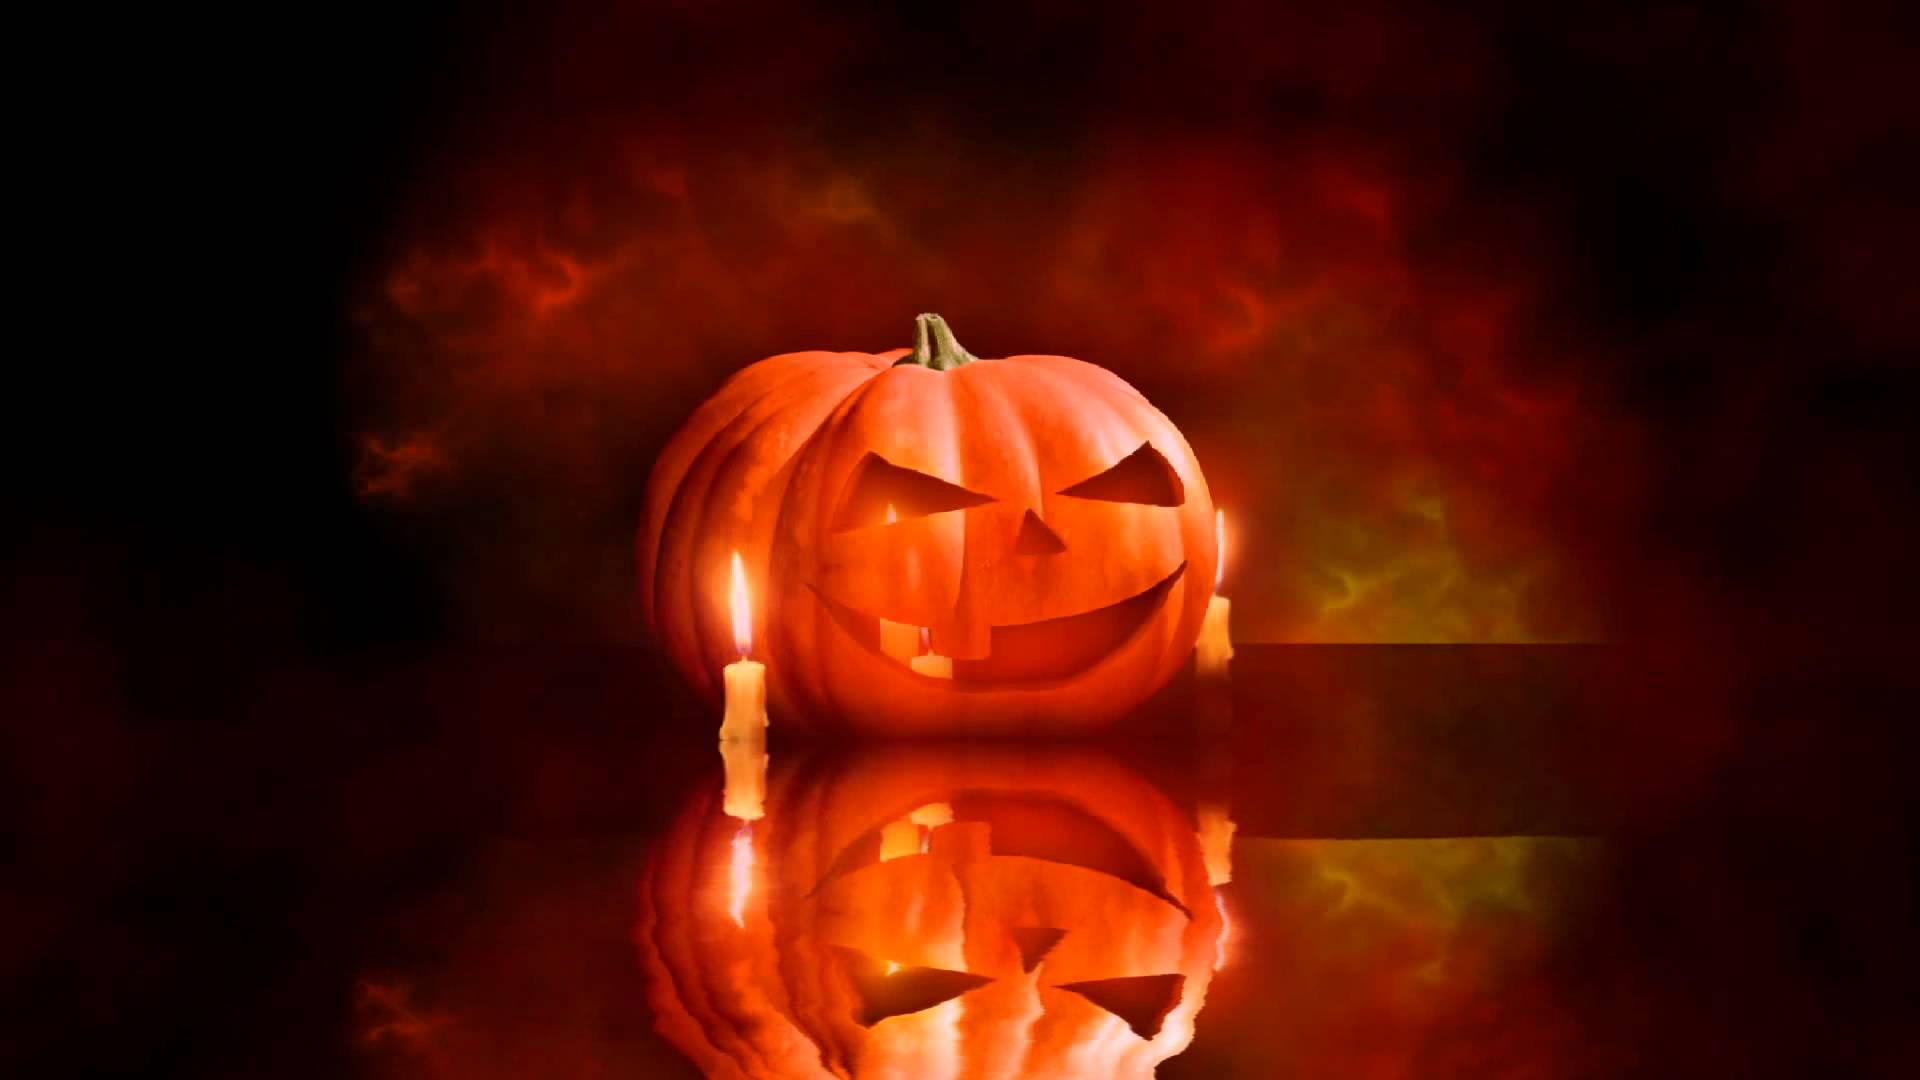 Halloween Animated Wallpaper httpwwwdesktopanimatedcom 1920x1080